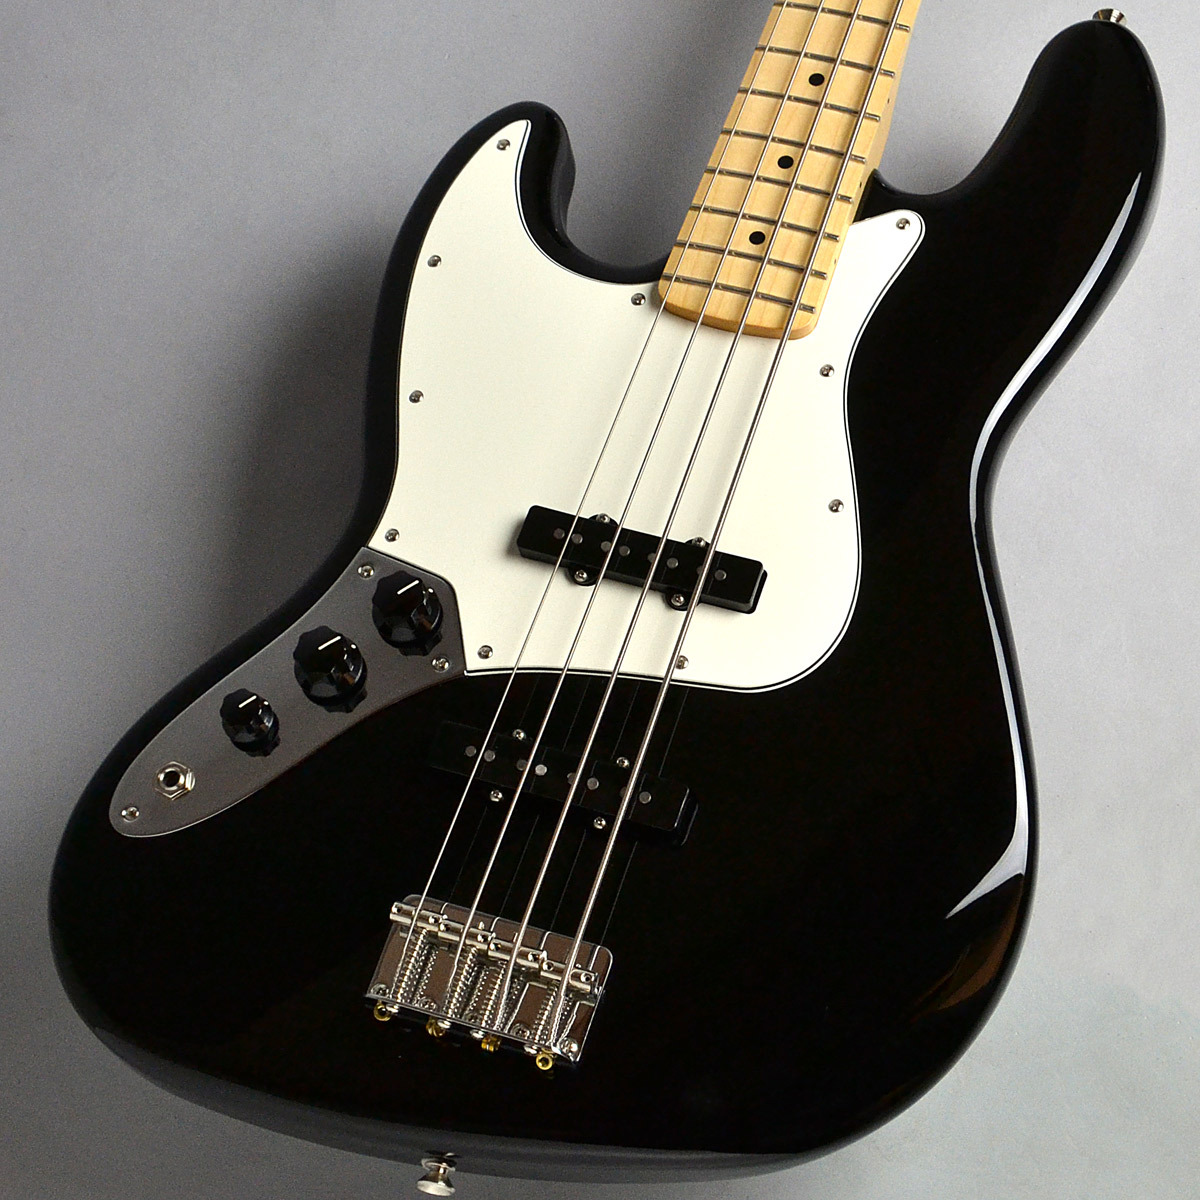 USED Player Series Jazz Bass Left Handed / Blackのボディトップ-アップ画像